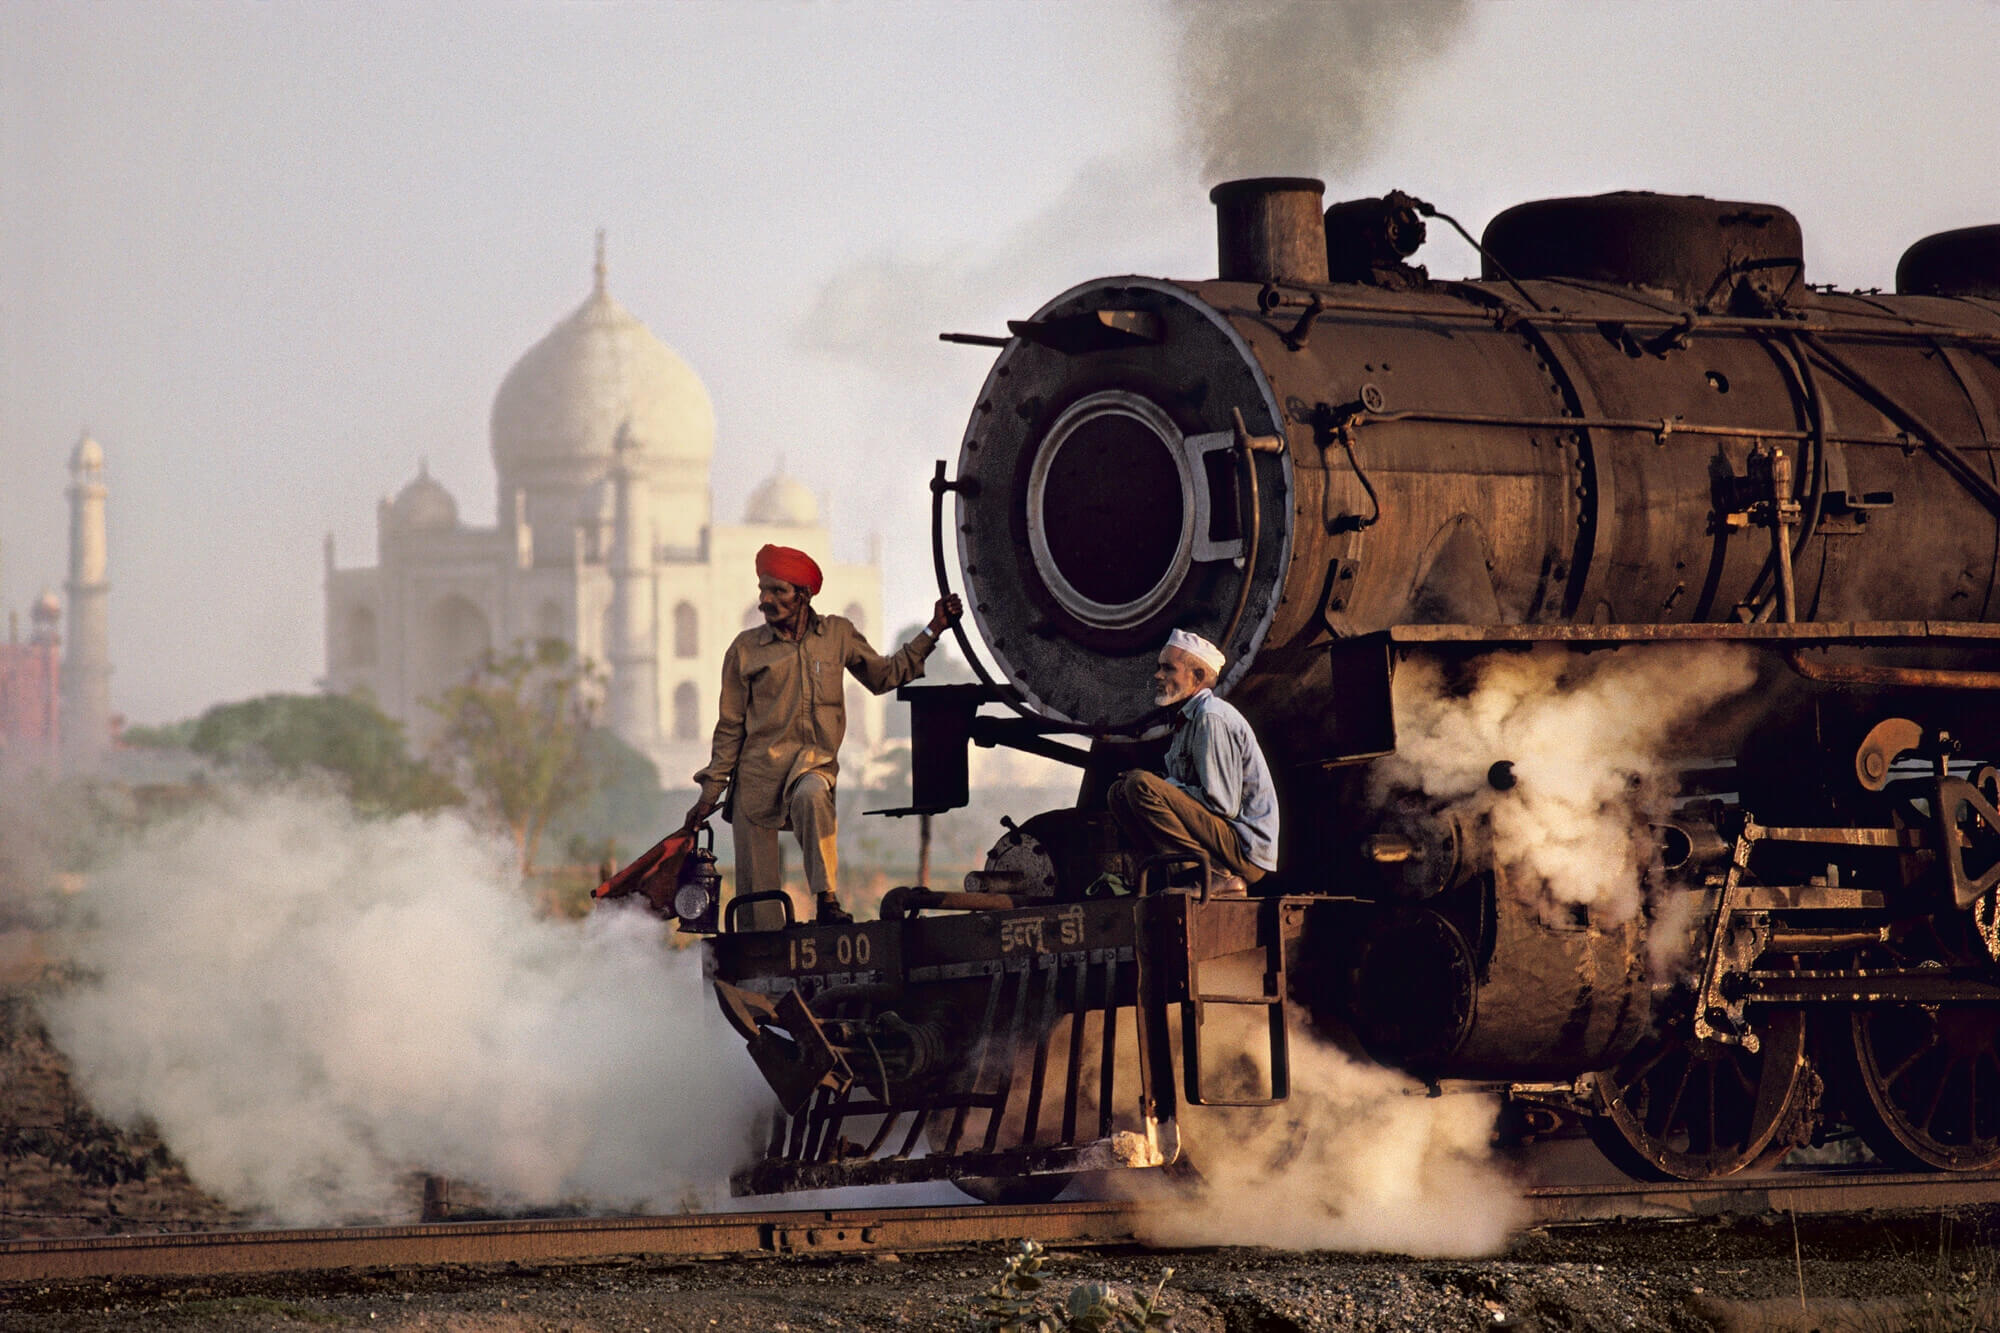 The World of Steve McCurry Photography Exhibit - India, 1983 (Copyright Steve McCurry)